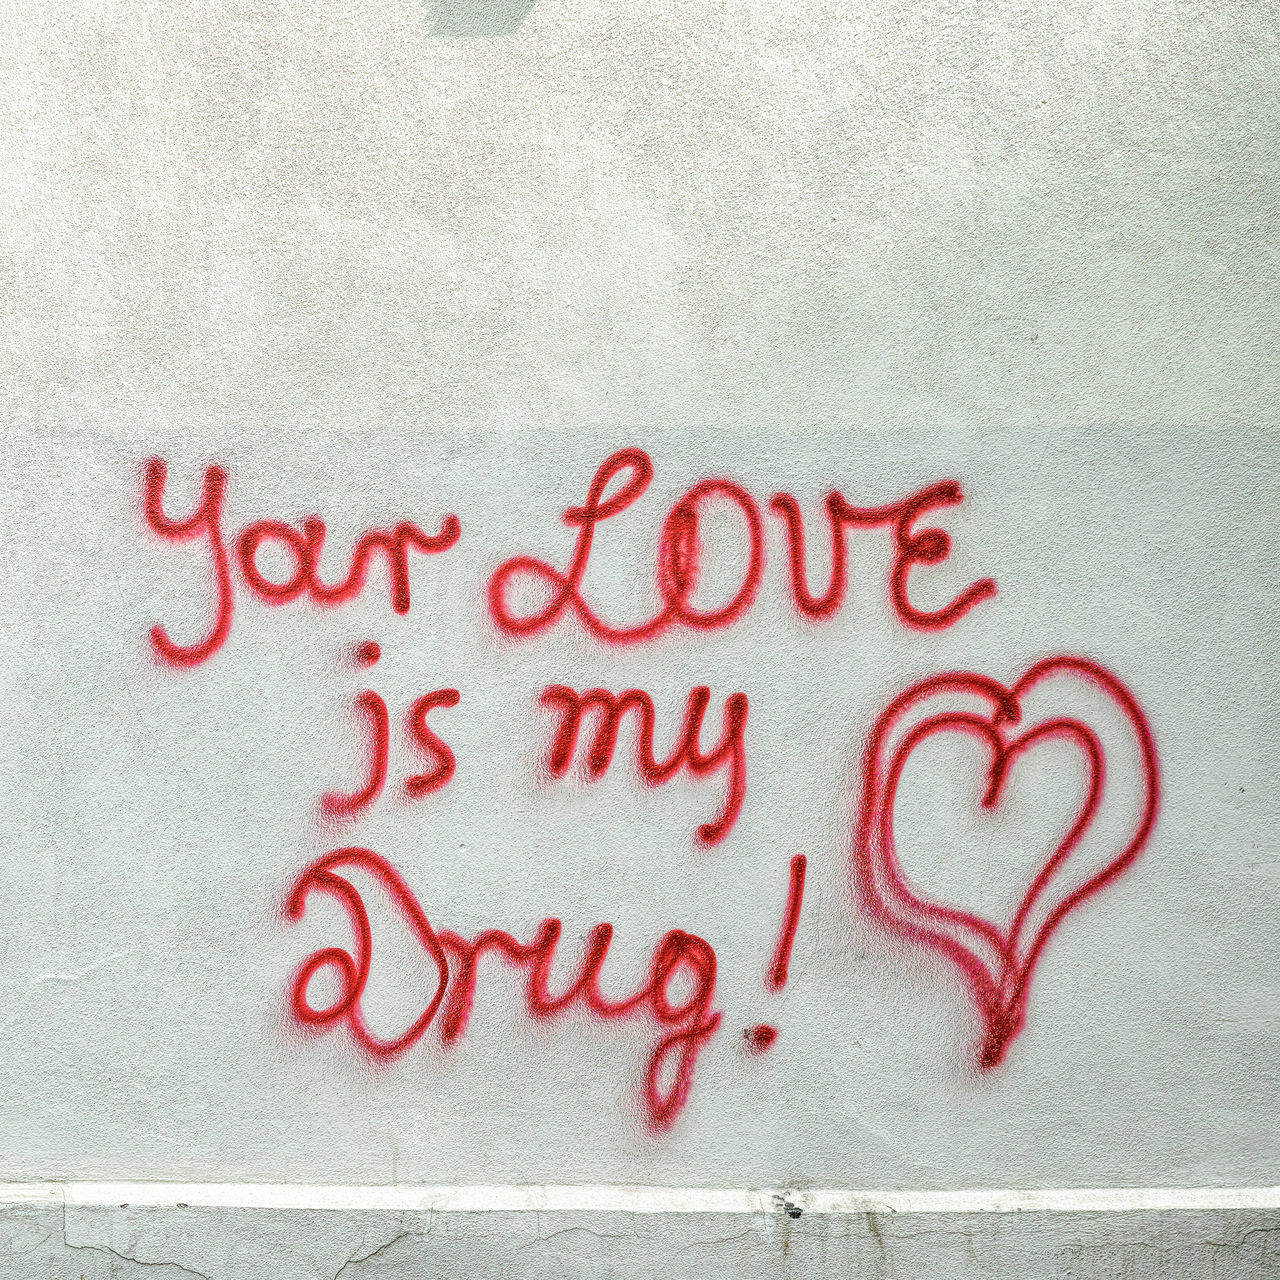 Love Anonymous City Life Close-up Confession Day Declaration Of Love Graffiti Heart Love Love Confession No People Profession Of Love Red Red Red Text Text Wall White Wall Your Love Is My Drug